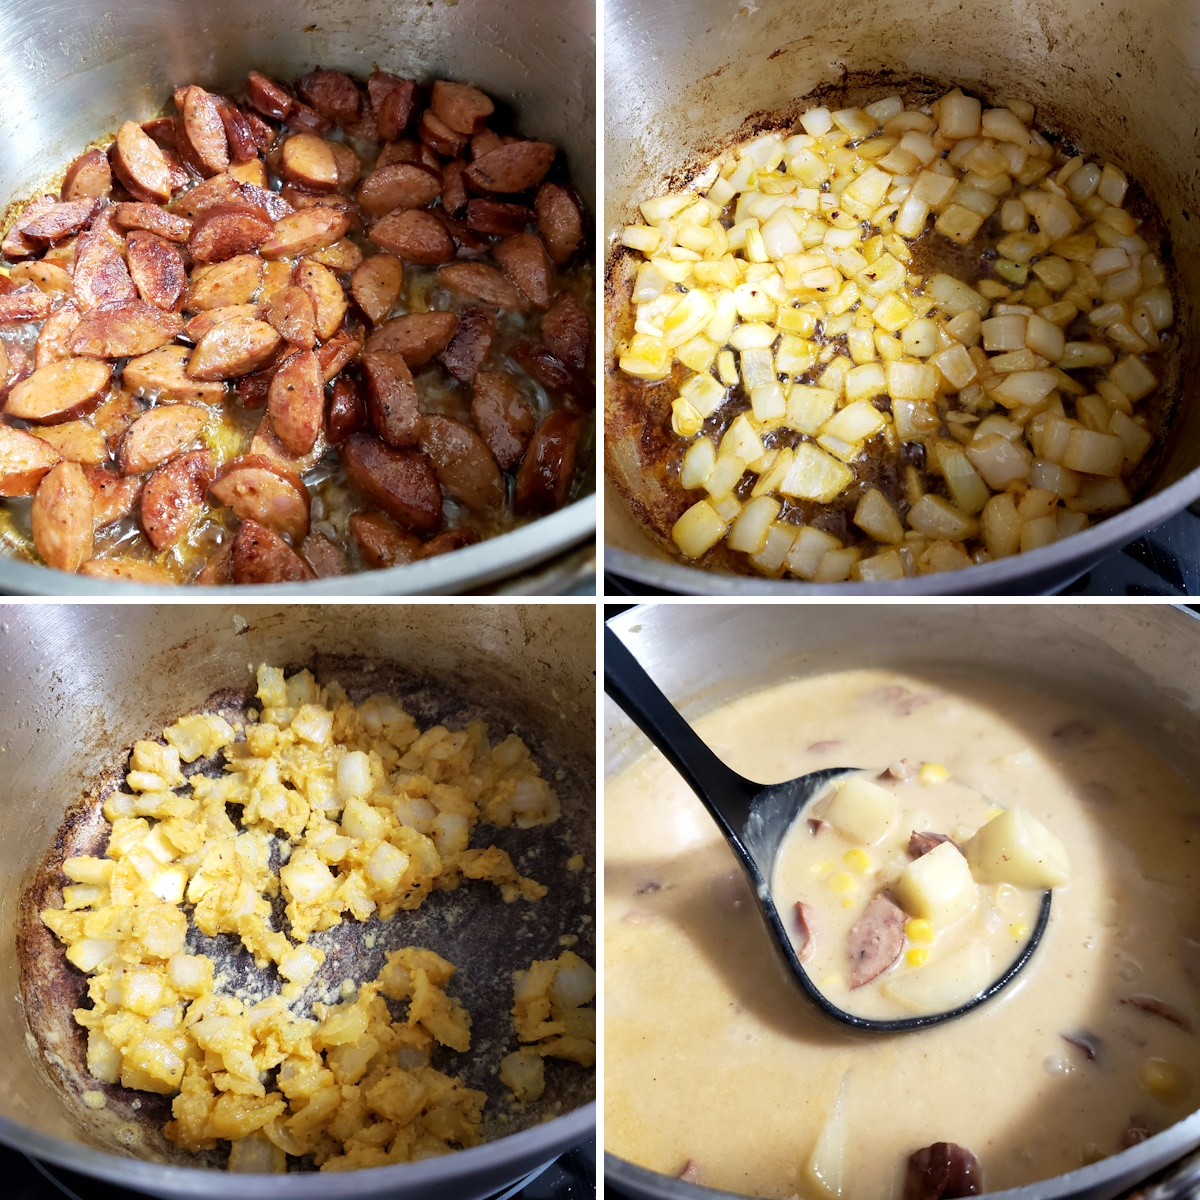 Browning sausage, onions, and adding the ingredients of soup to a stock pot.